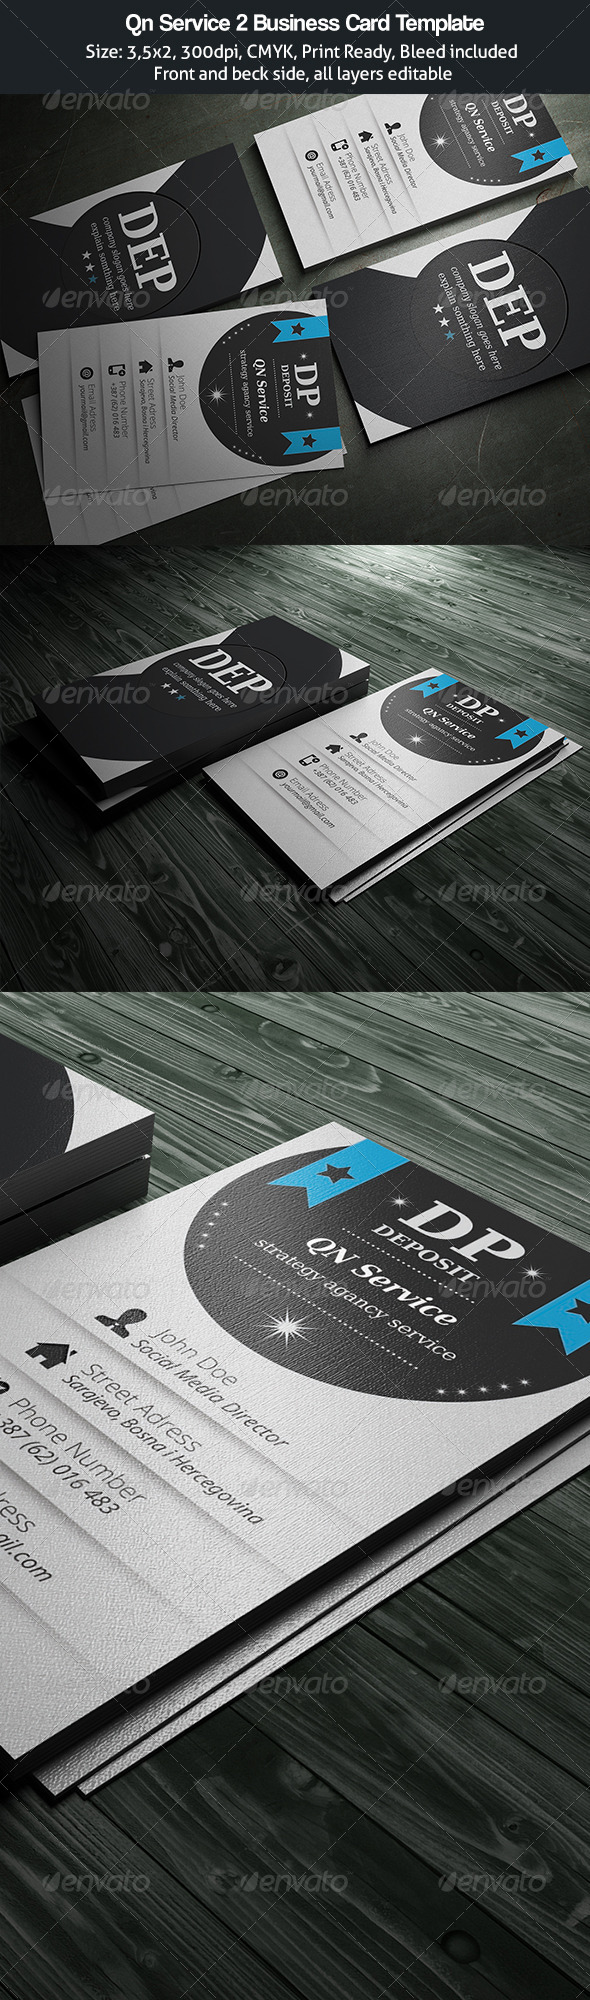 GraphicRiver Business Card Qn Service II 4639679